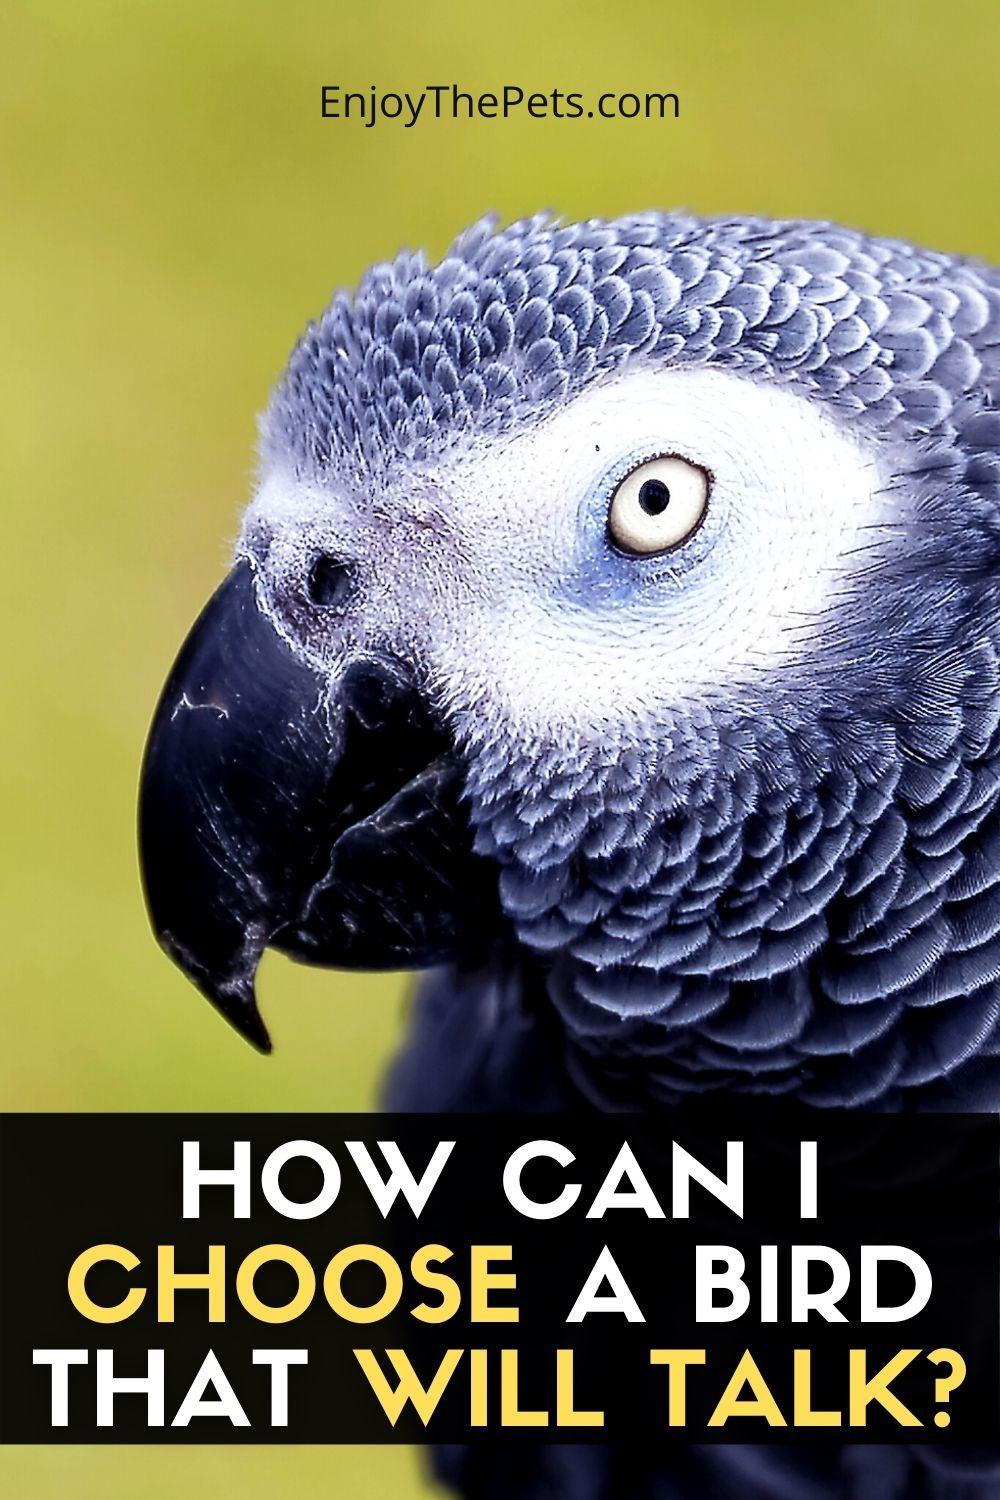 HOW CAN I CHOOSE A BIRD THAT WILL TALK? 5